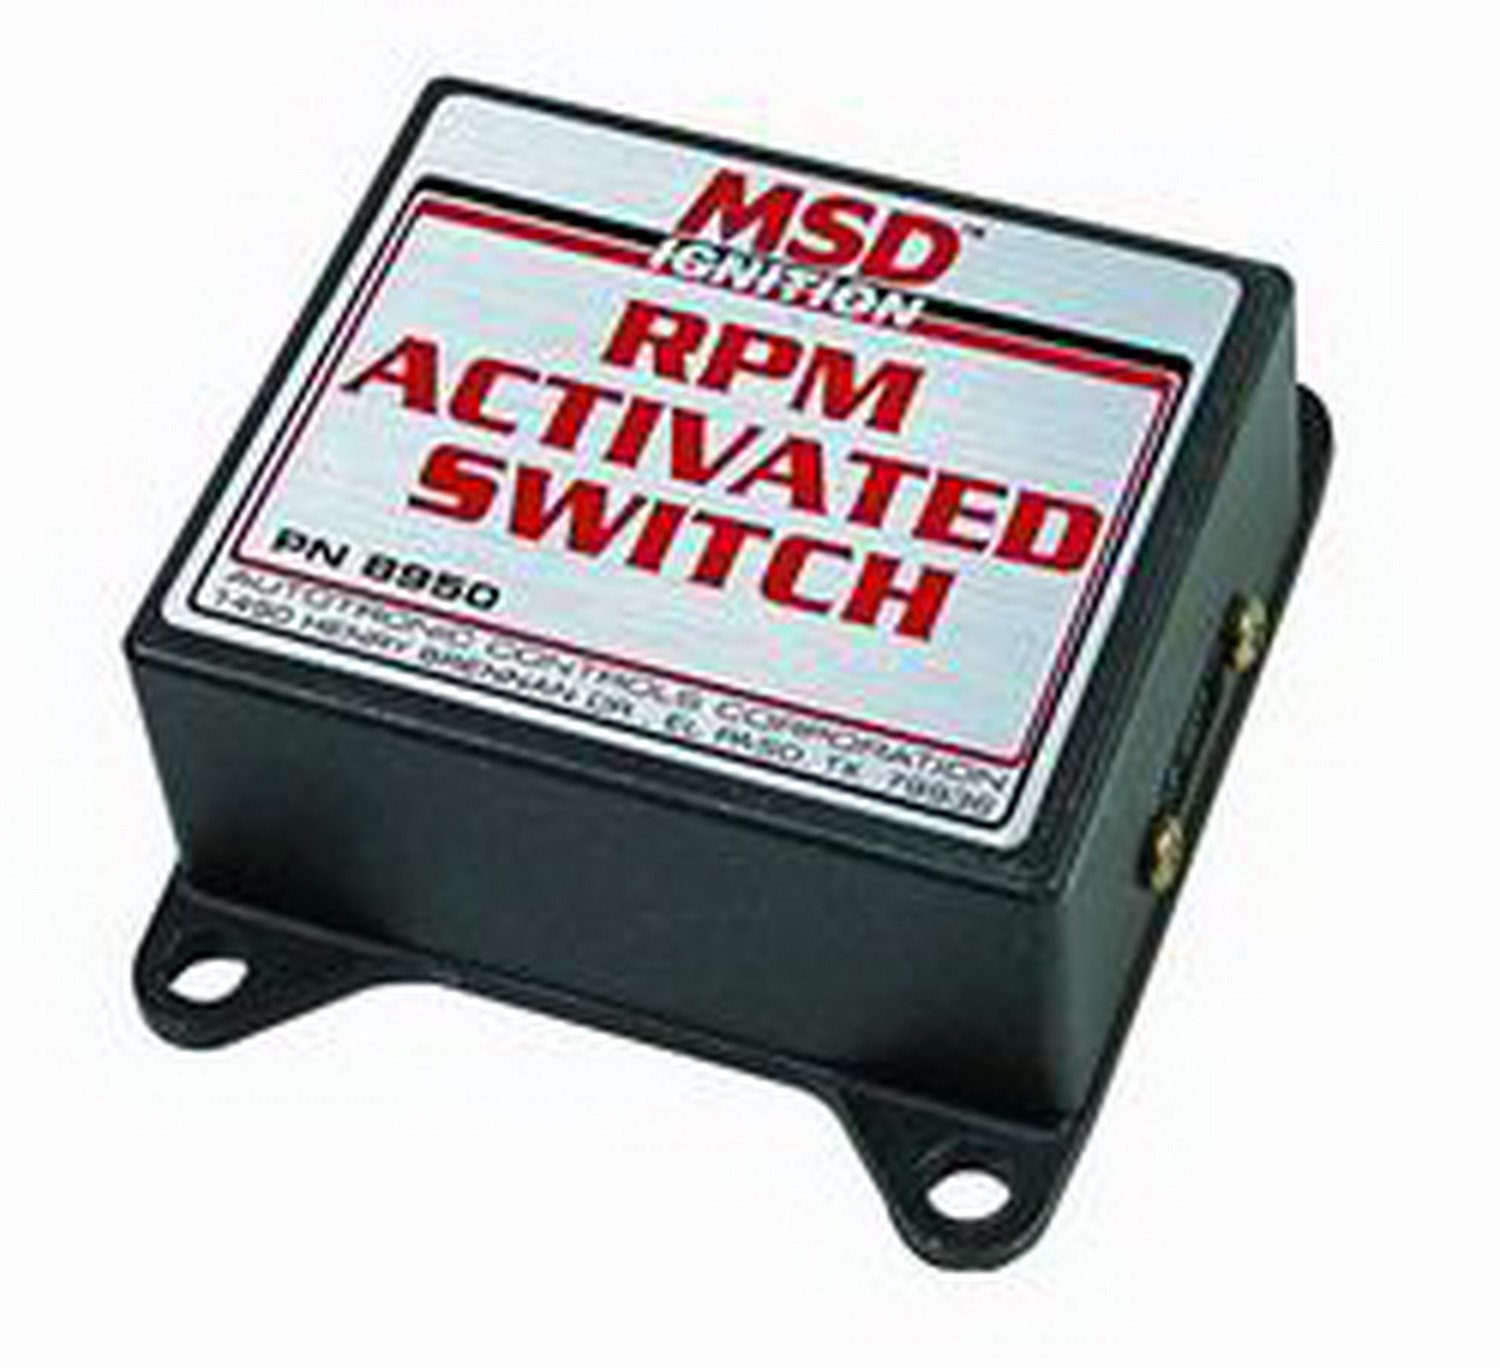 Wiring Diagram Msd 8950 Wire Center 8739 Amazon Com Rpm Activated Switch Automotive Rh 5200 Pn